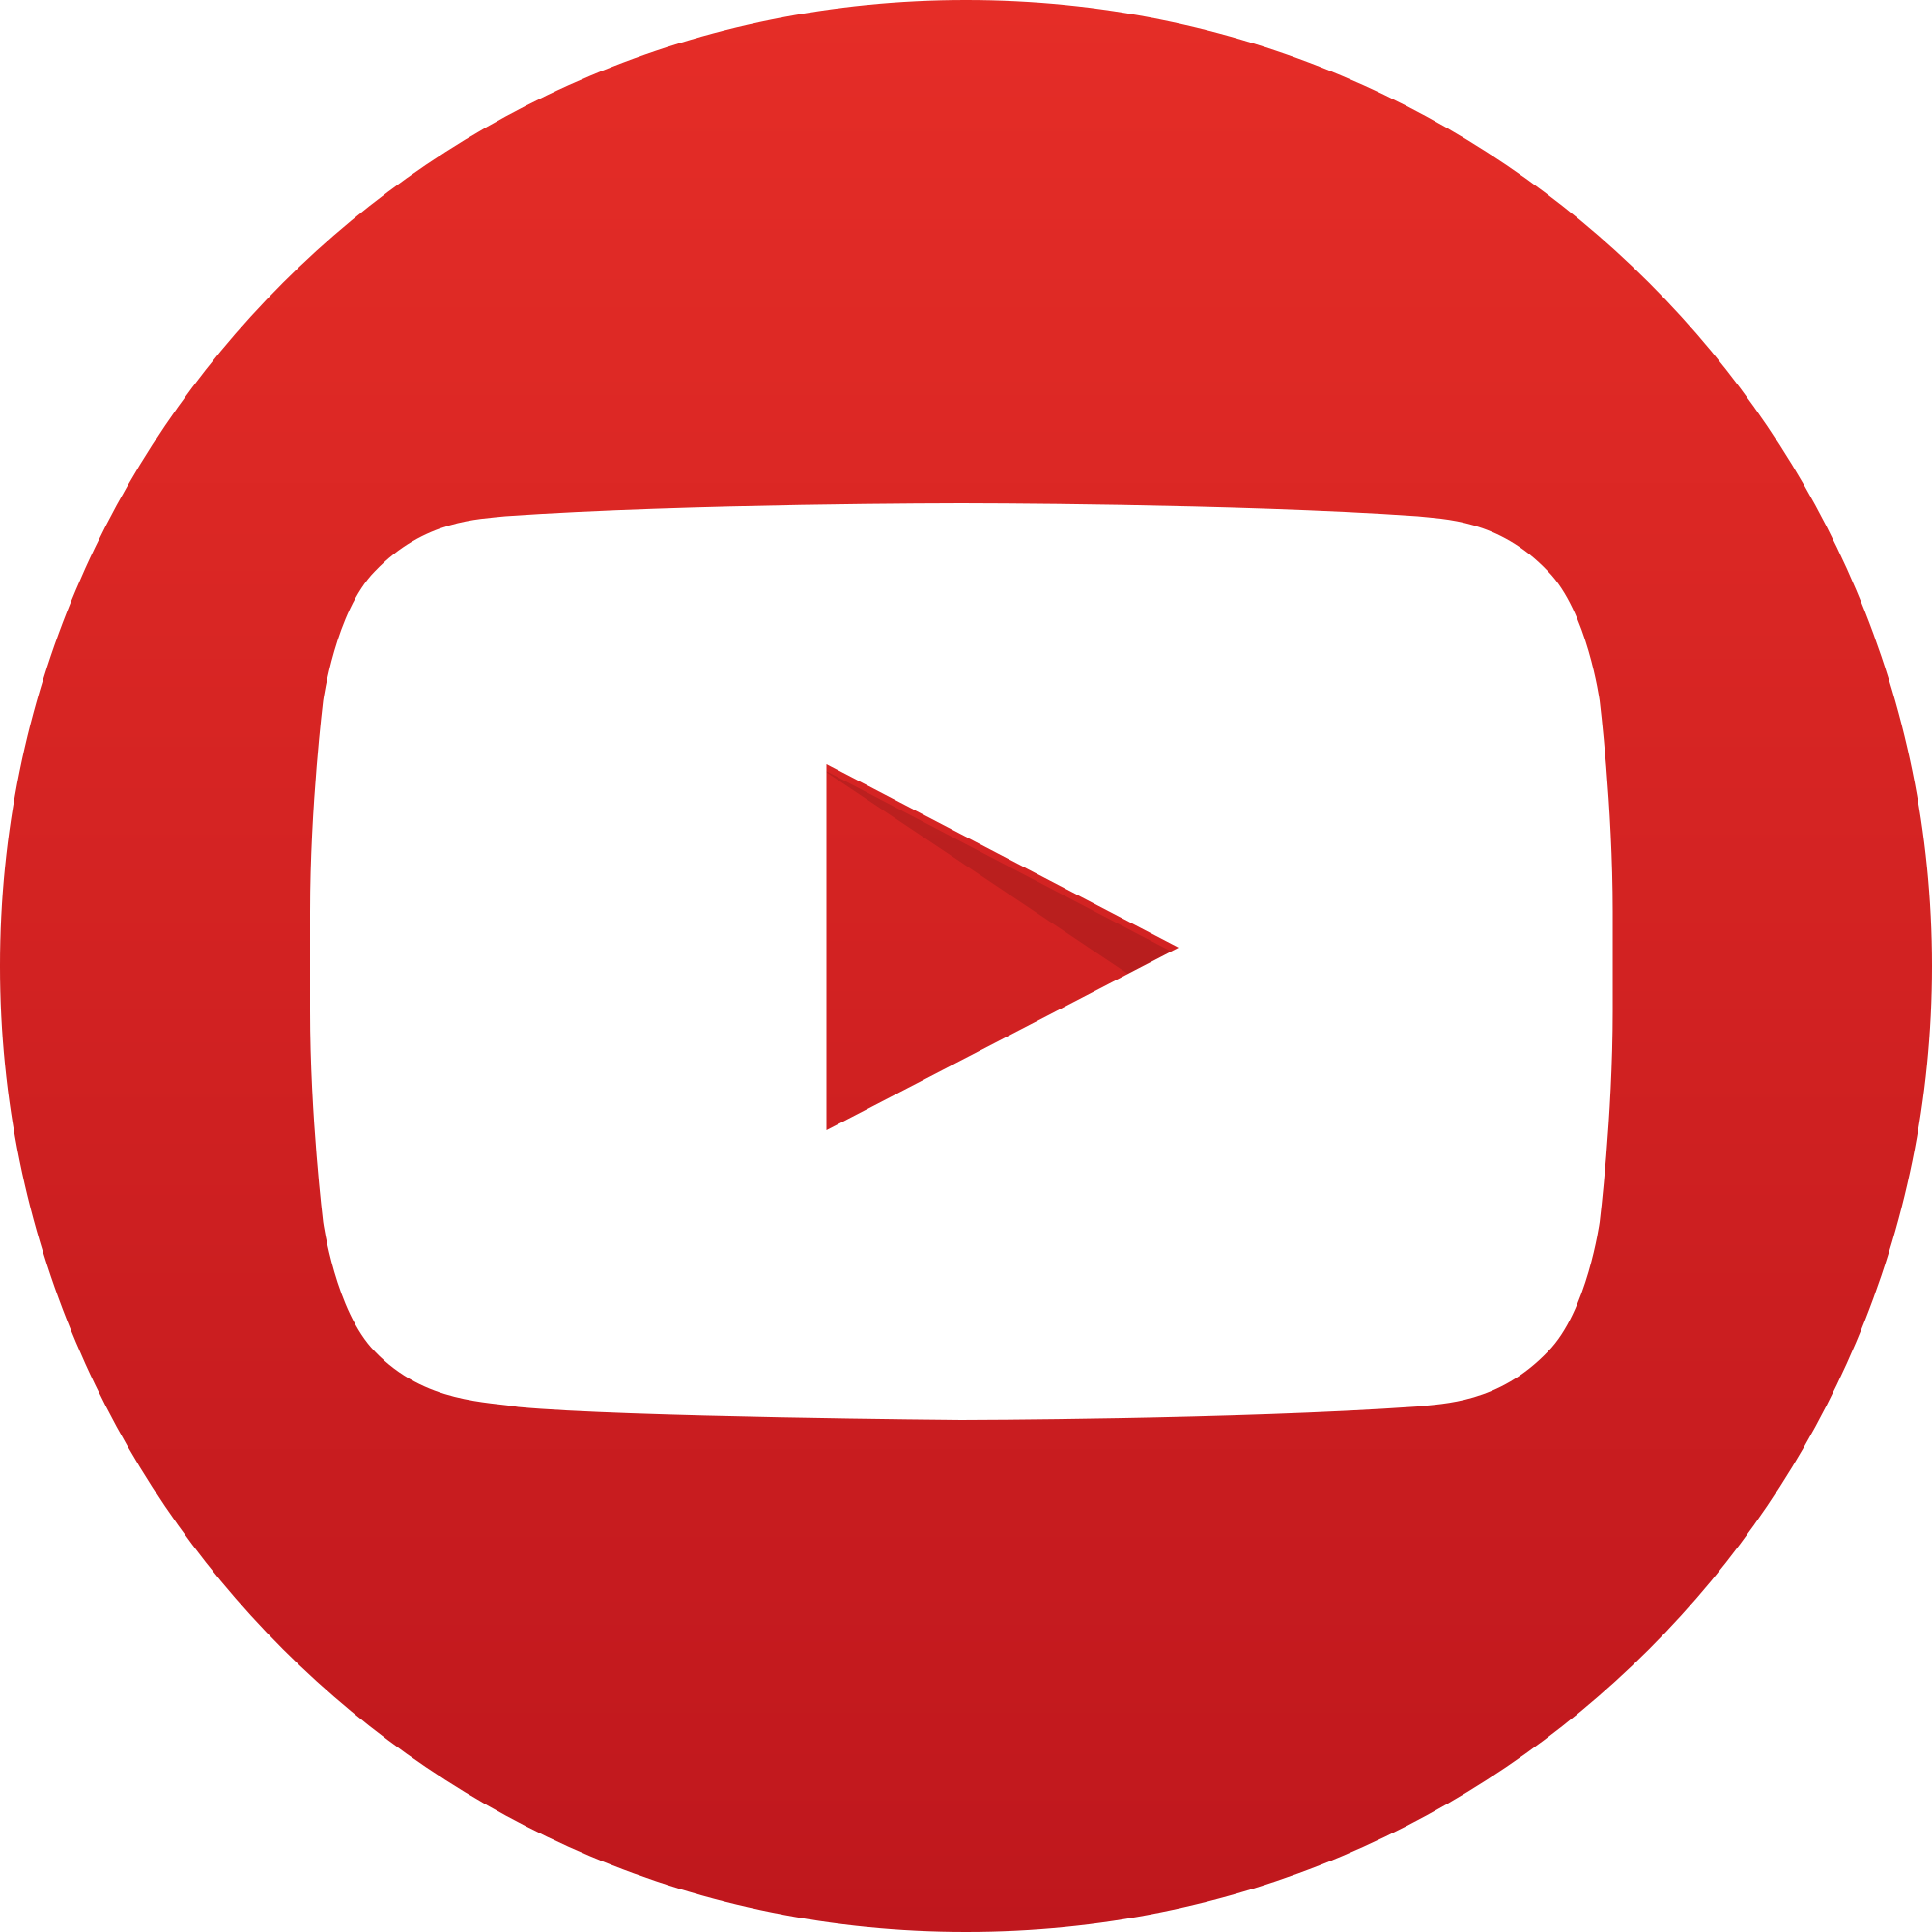 Logo youtube png. File play button circular